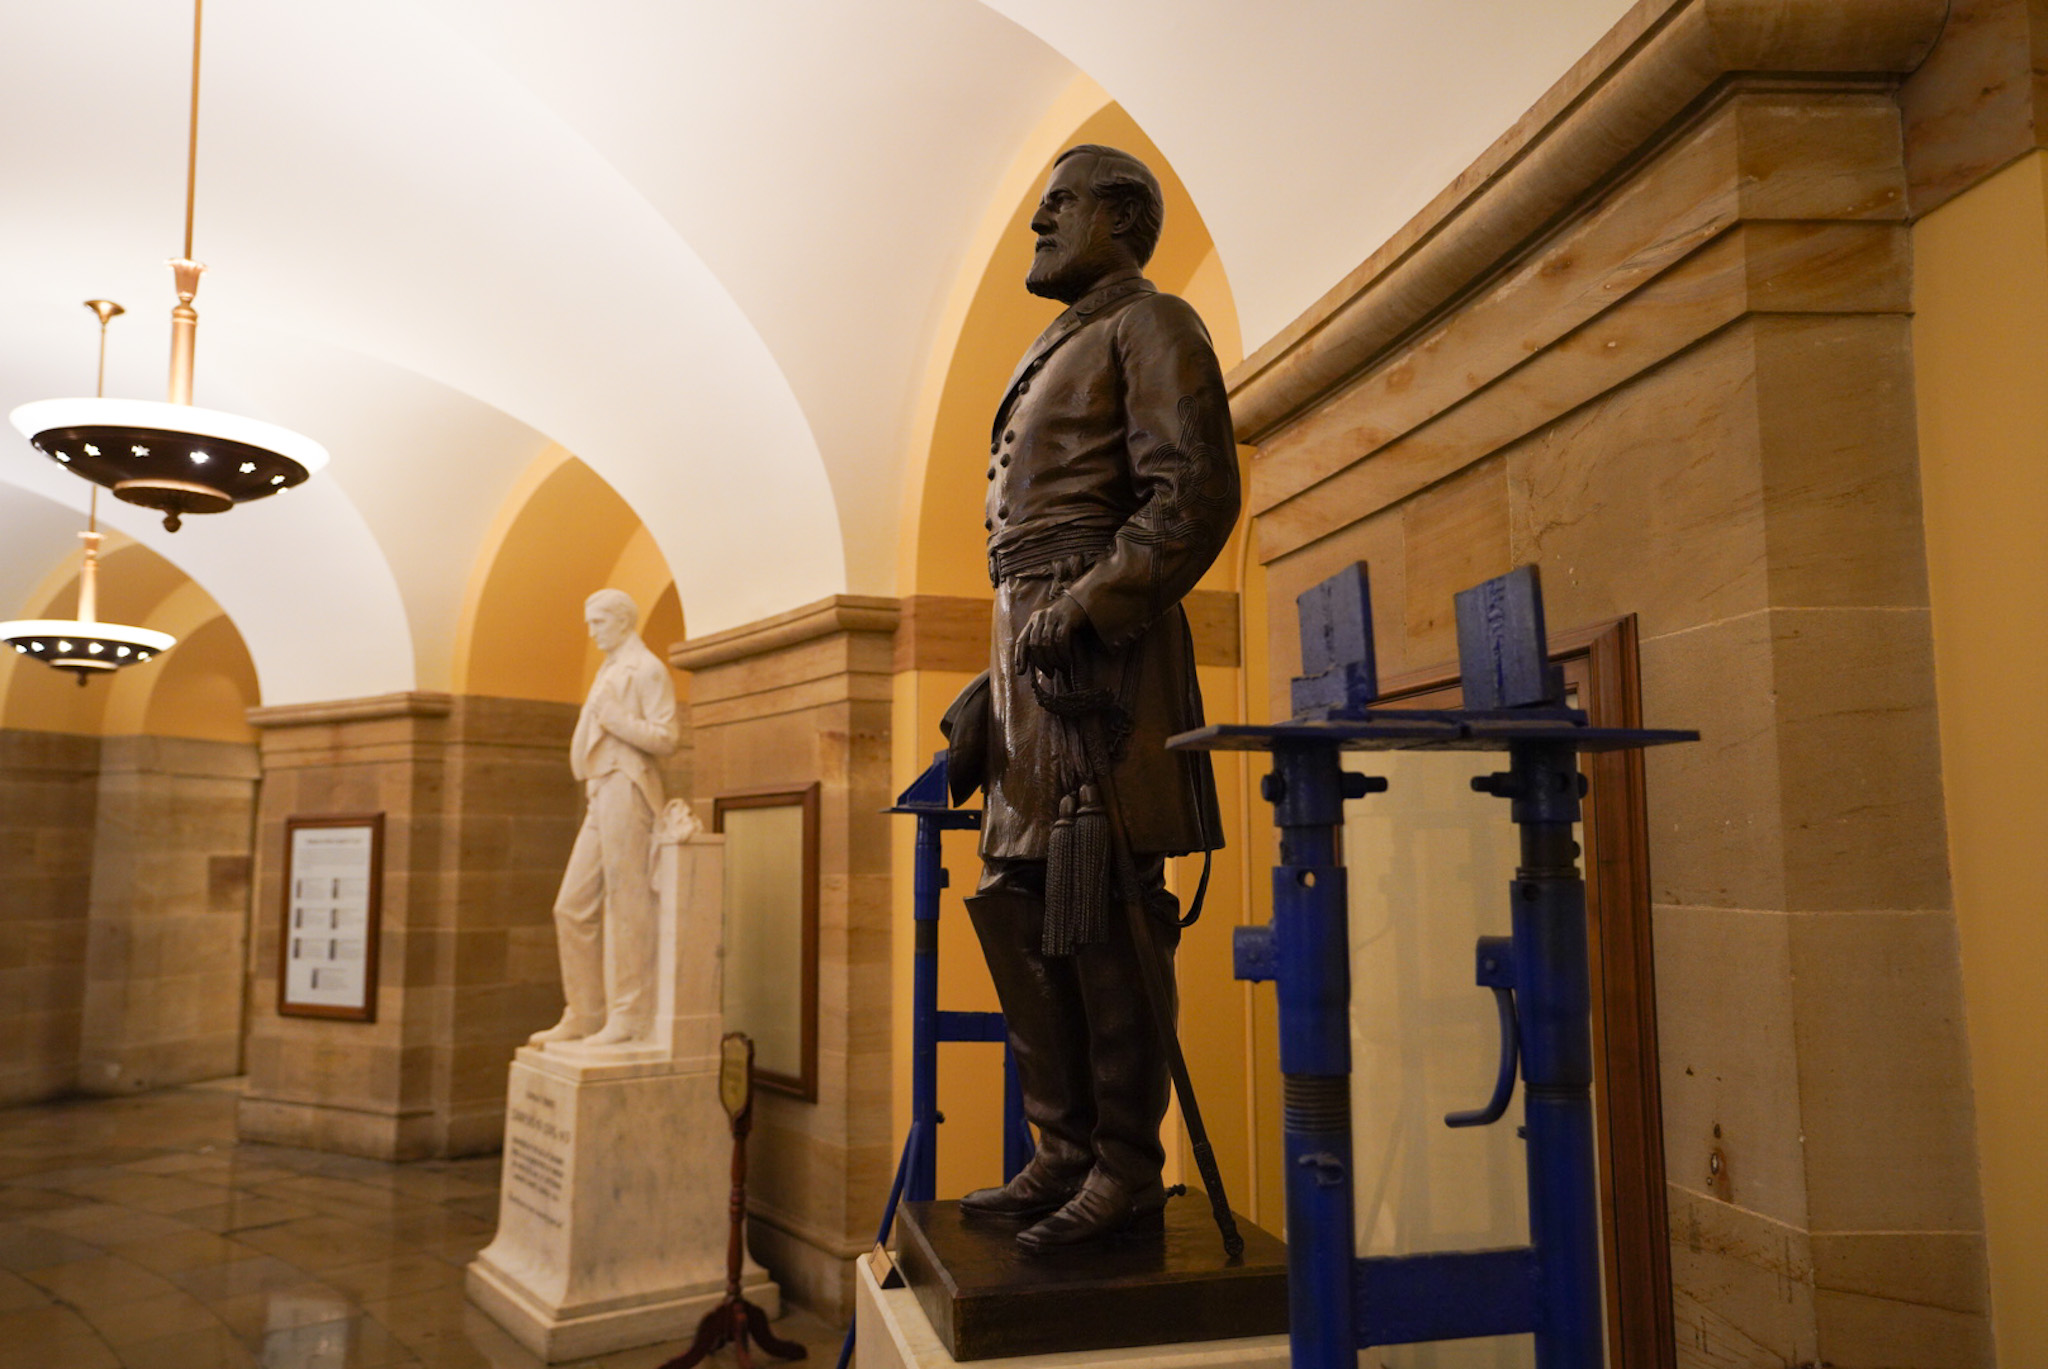 A Statue of Civil RIghts Activist Barbara Rose Johns May Soon Replace One of Robert E. Lee in the US Capitol Building | artnet News